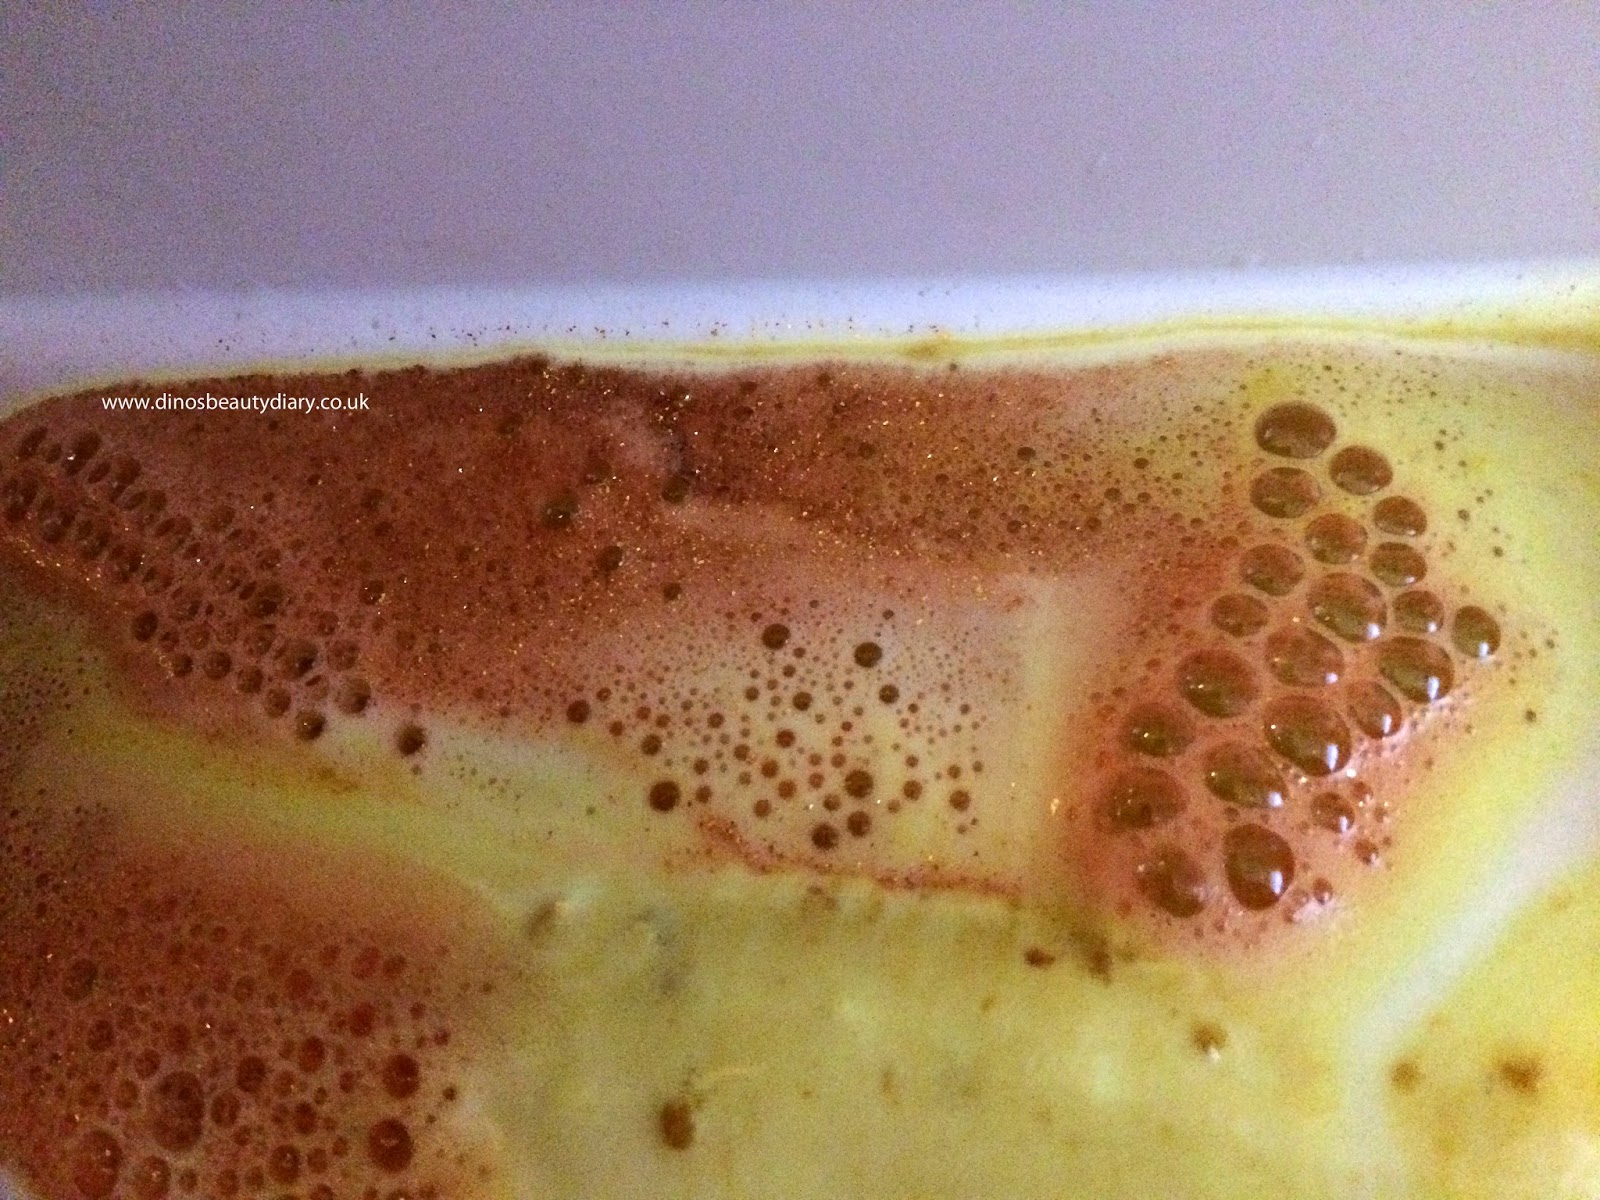 Dino's Beauty Diary - Bath and Body Review - LUSH Sparkler Bath Bomb Review